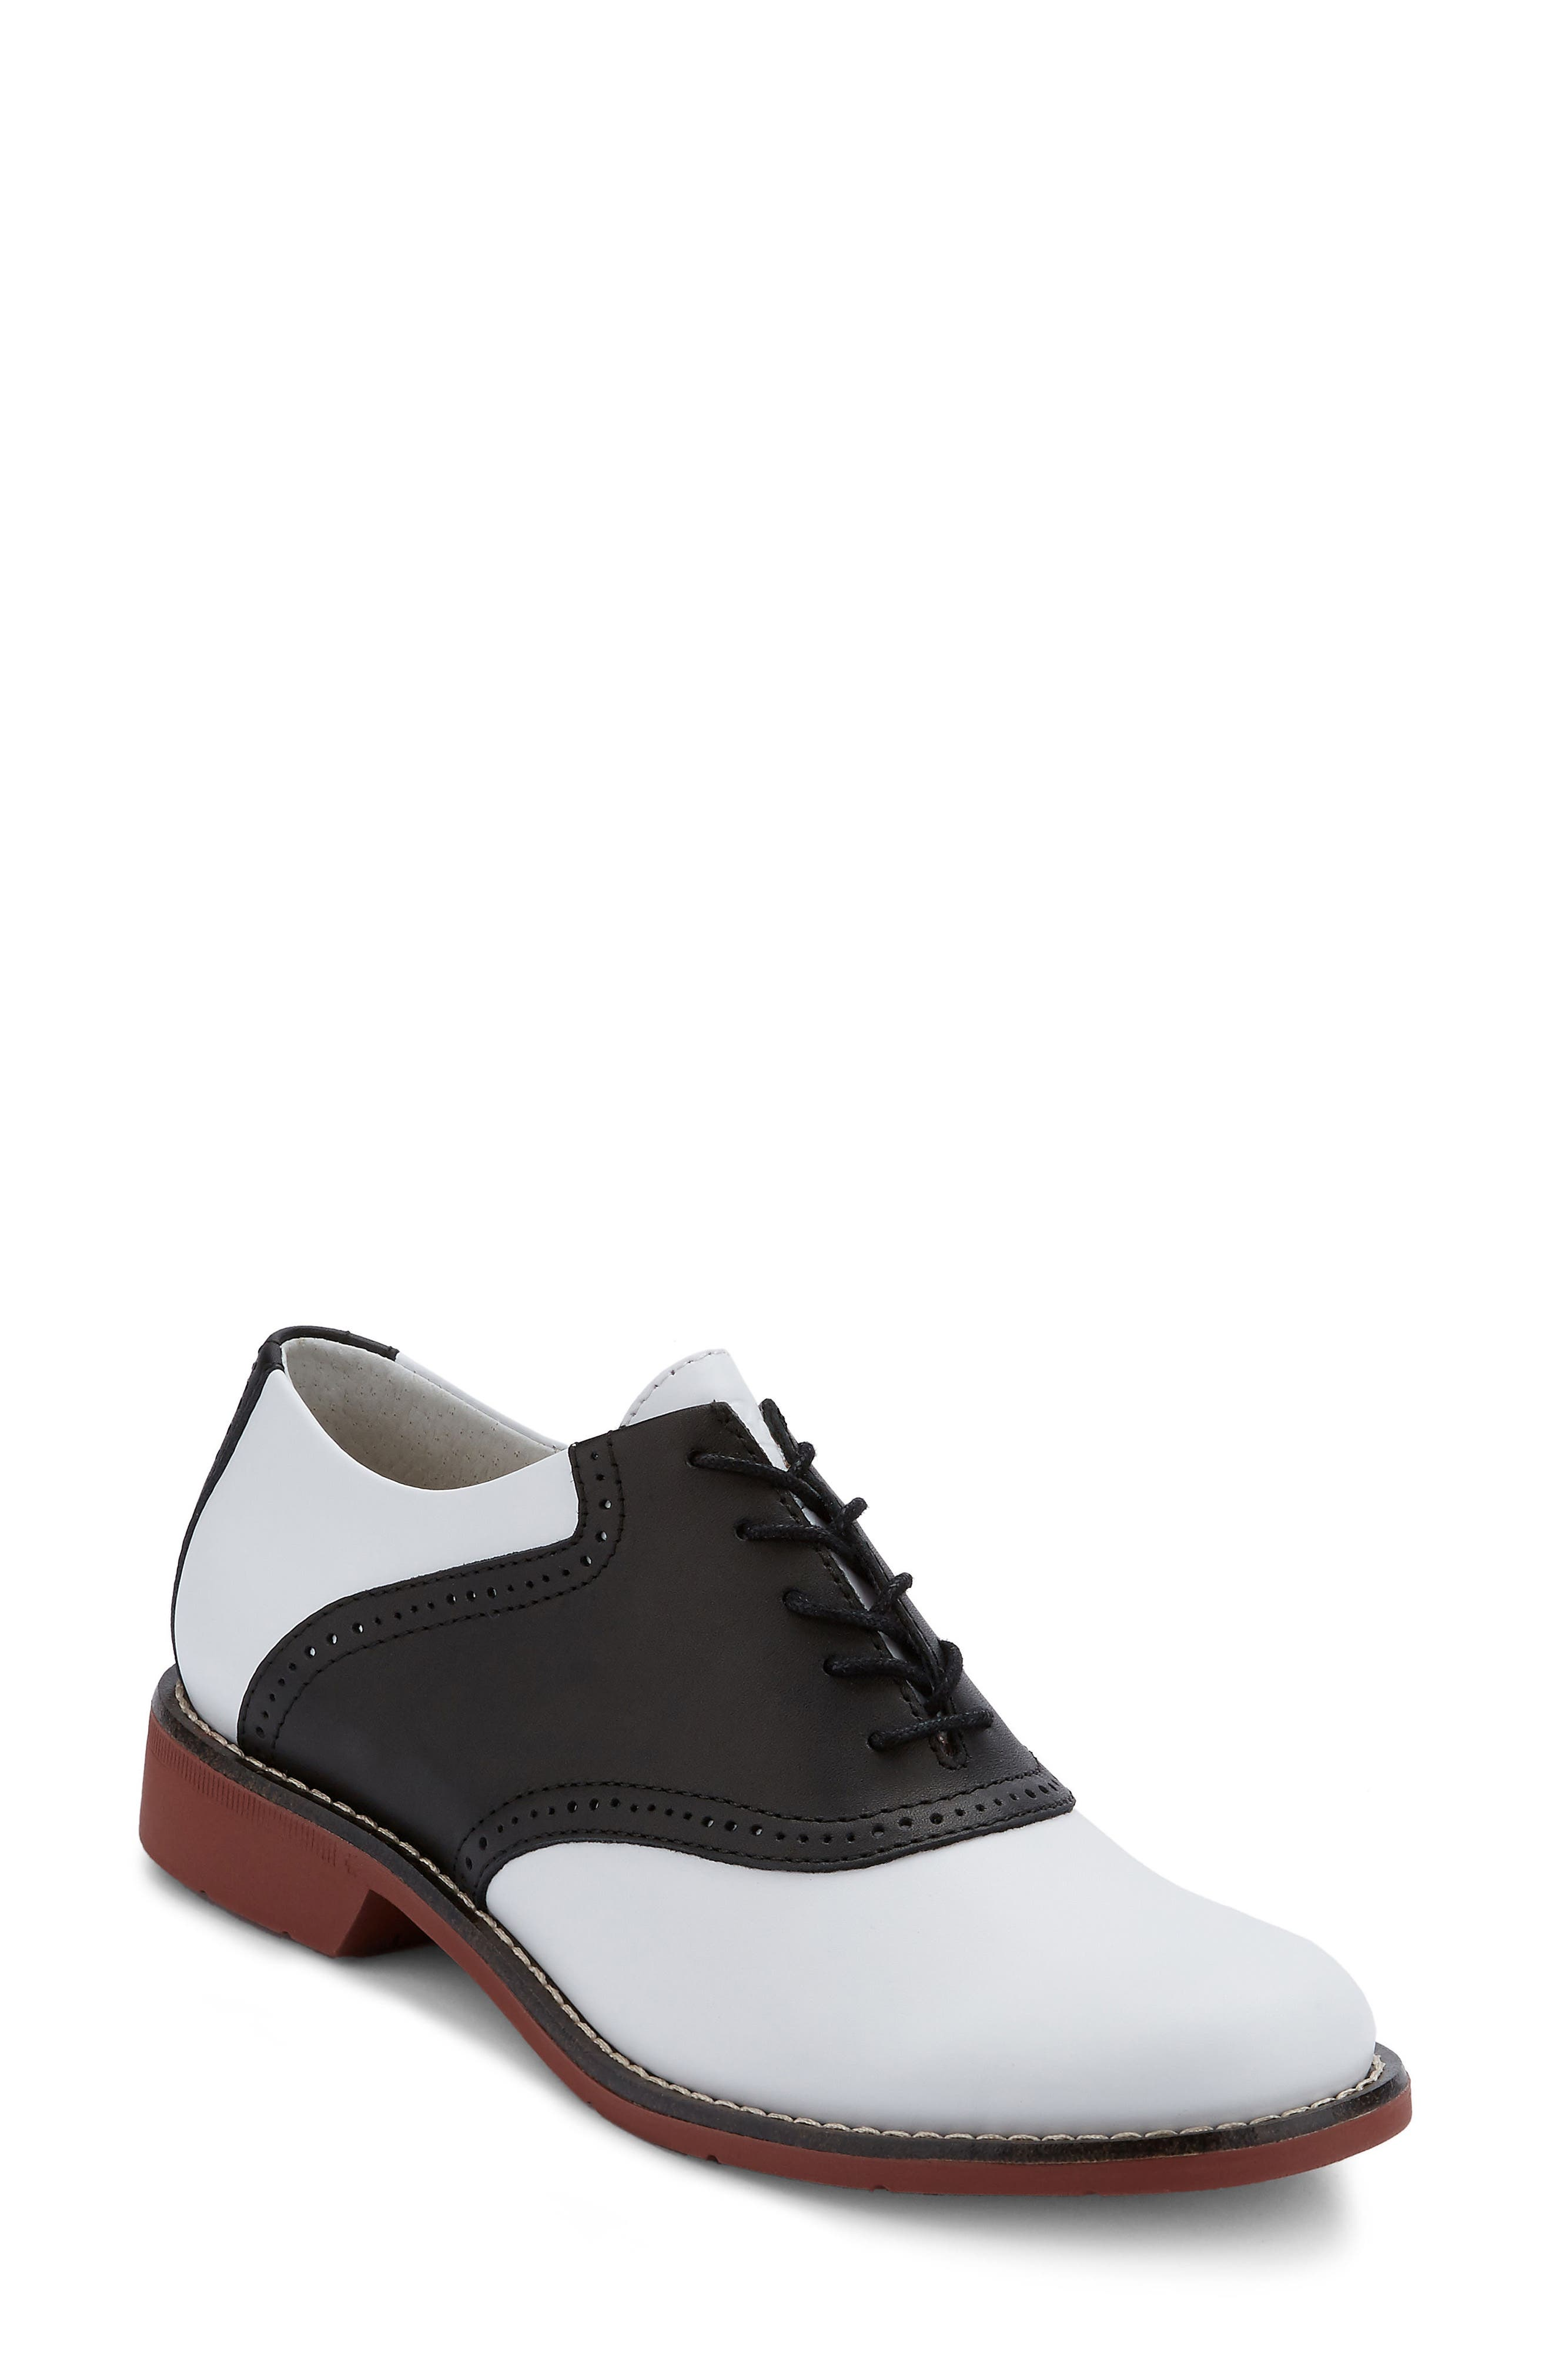 G.H. BASS & CO. G.H. Bass and Co. Dora Lace-Up Oxford, Main, color, 017